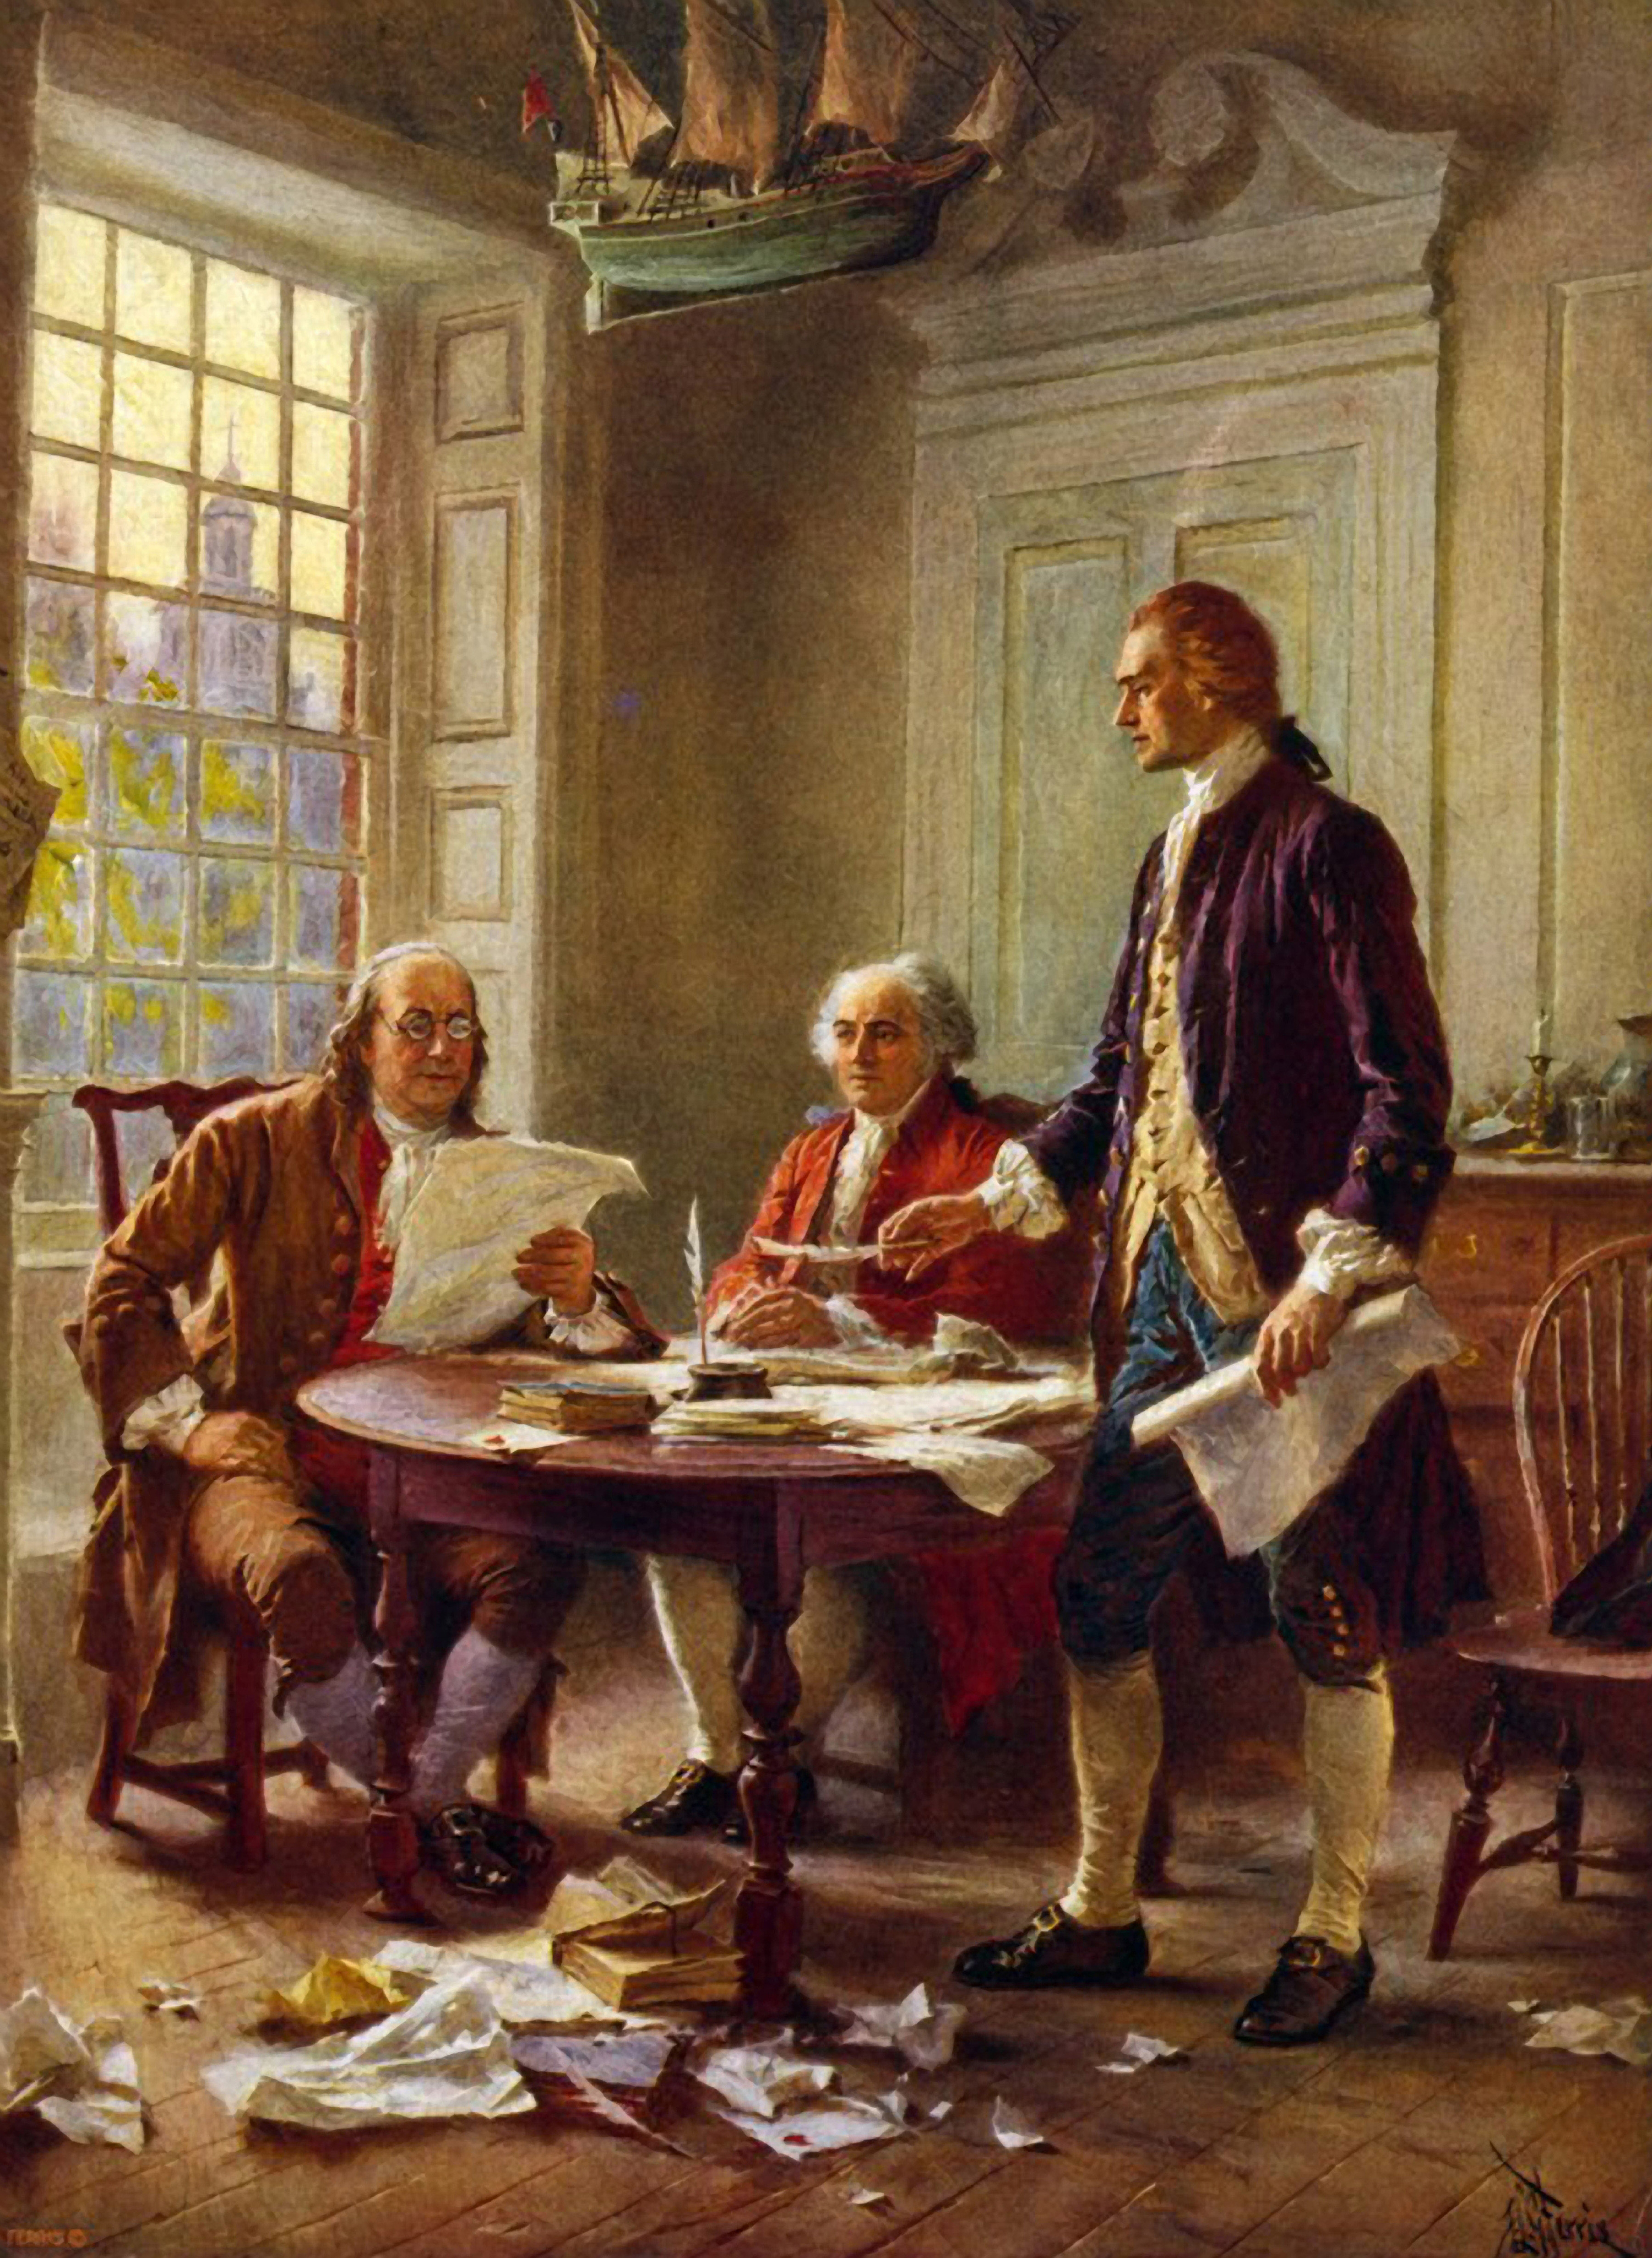 John Adams was sure we'd all celebrate July 2nd, not July 4th